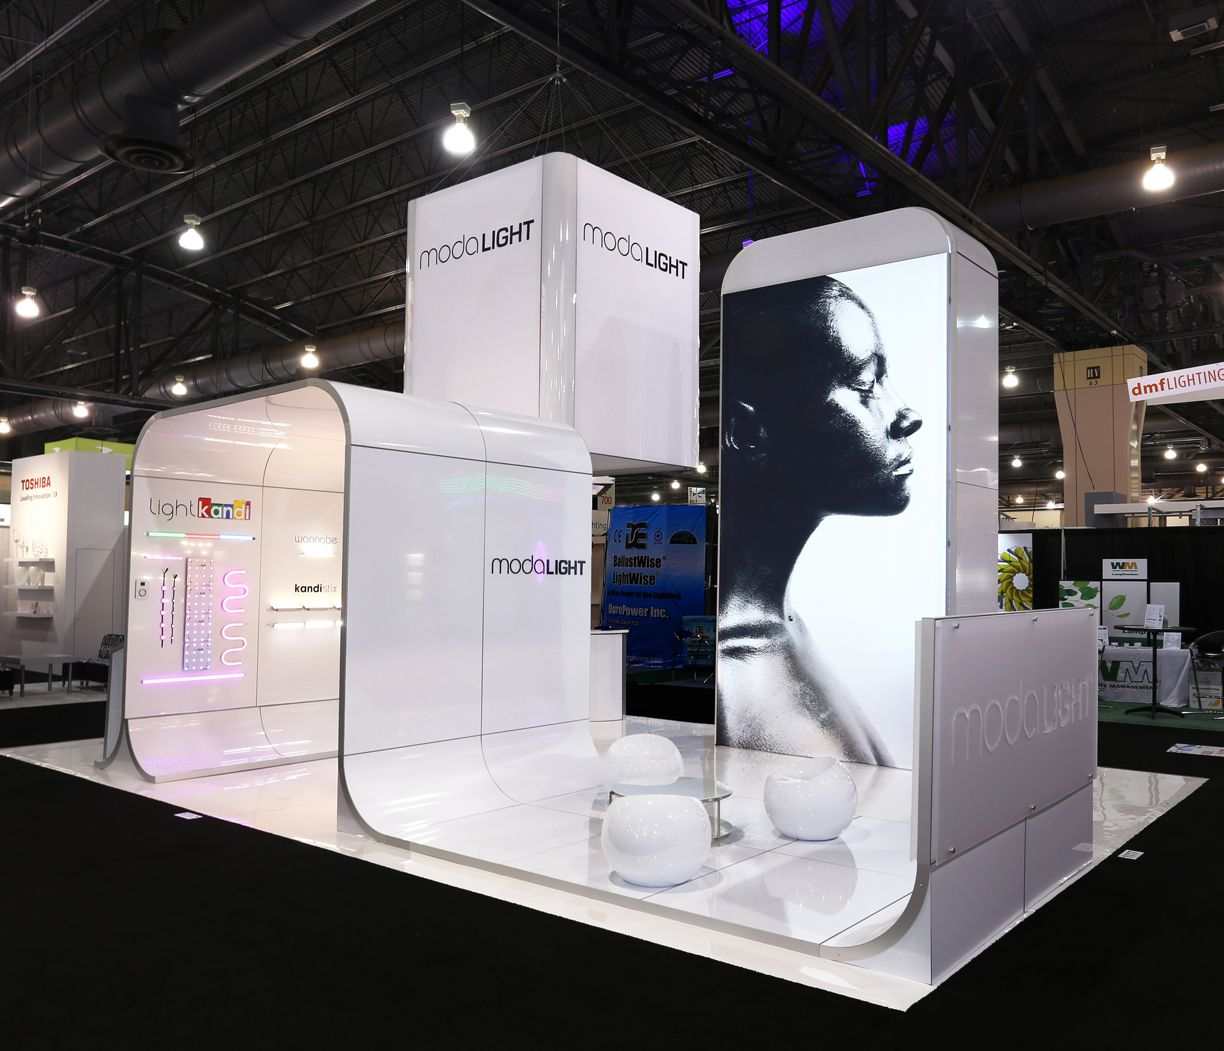 Booth Design Ideas fantastic booth design ideas and tips for trade shows Makai Trade Show Design Ideas Trade Show Booth Design Ideas